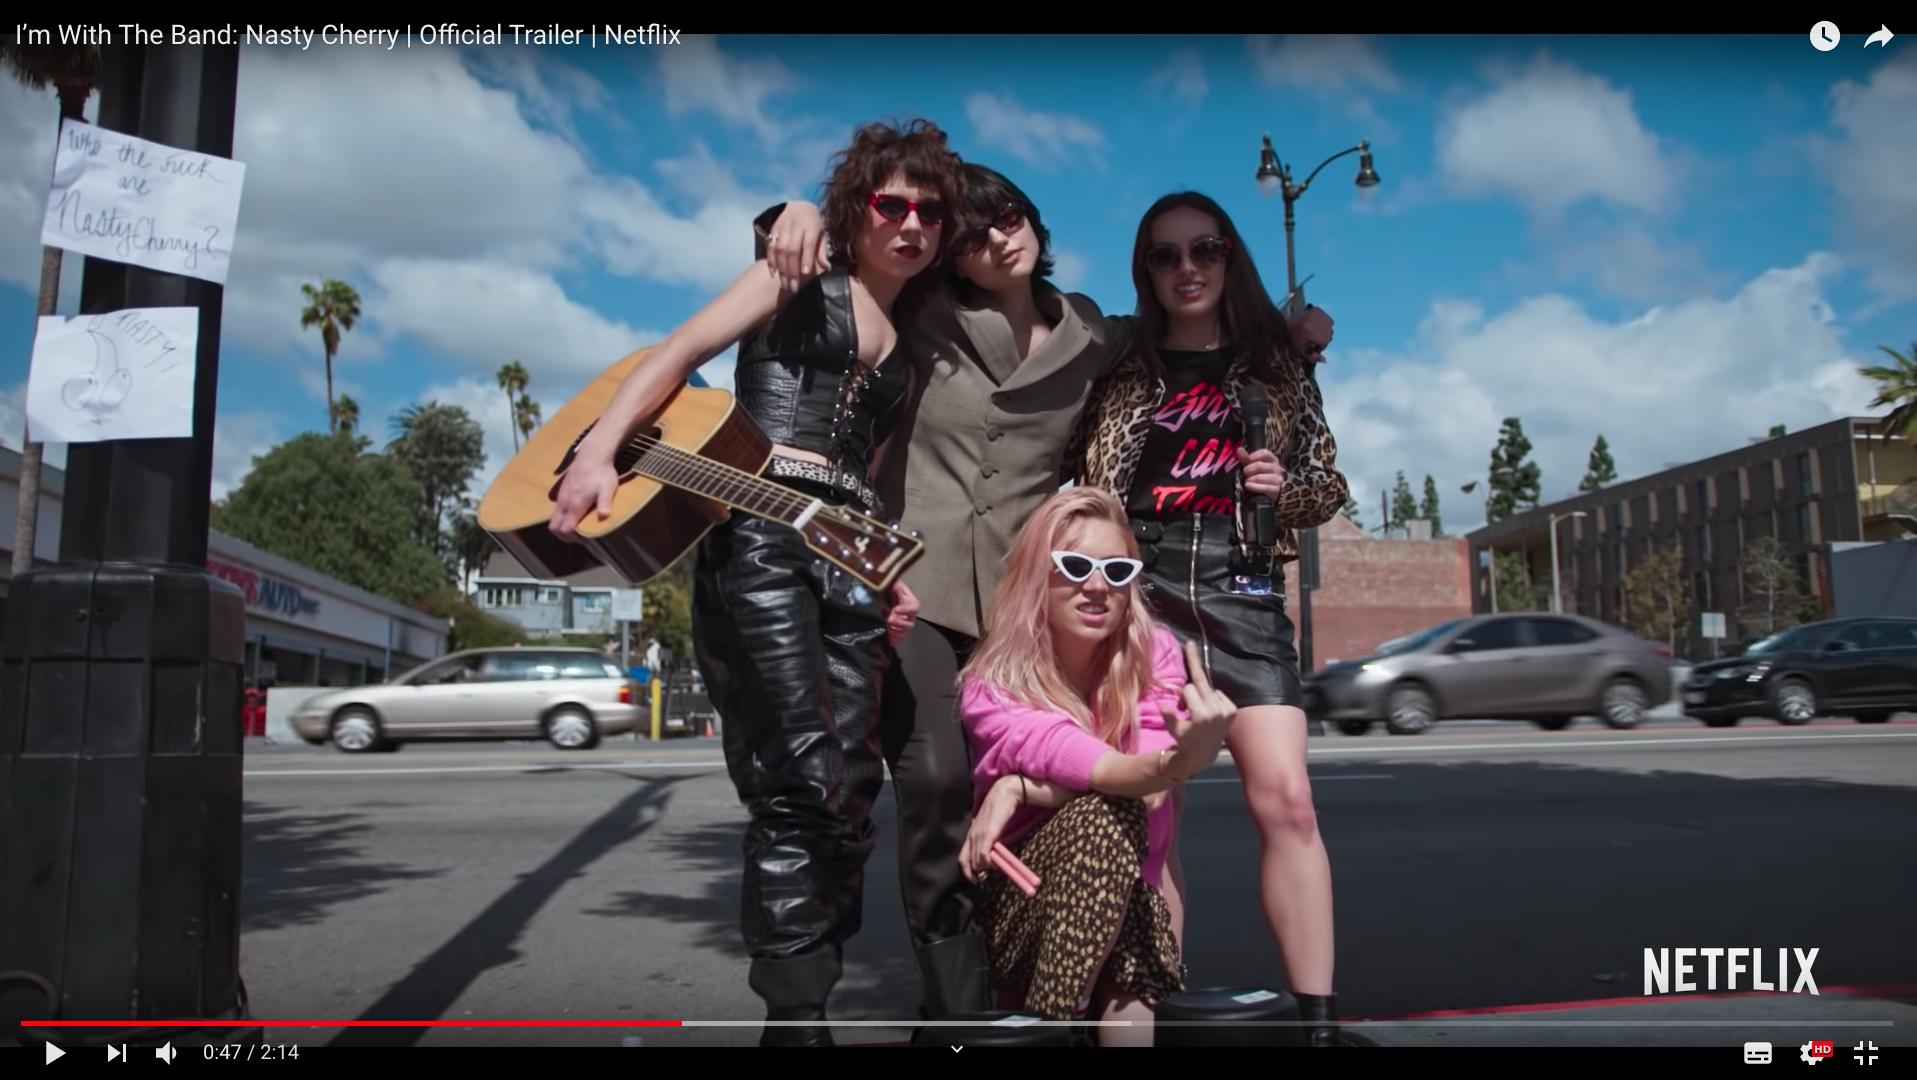 Netflix Releases Trailer for I'M WITH THE BAND: NASTY CHERRY